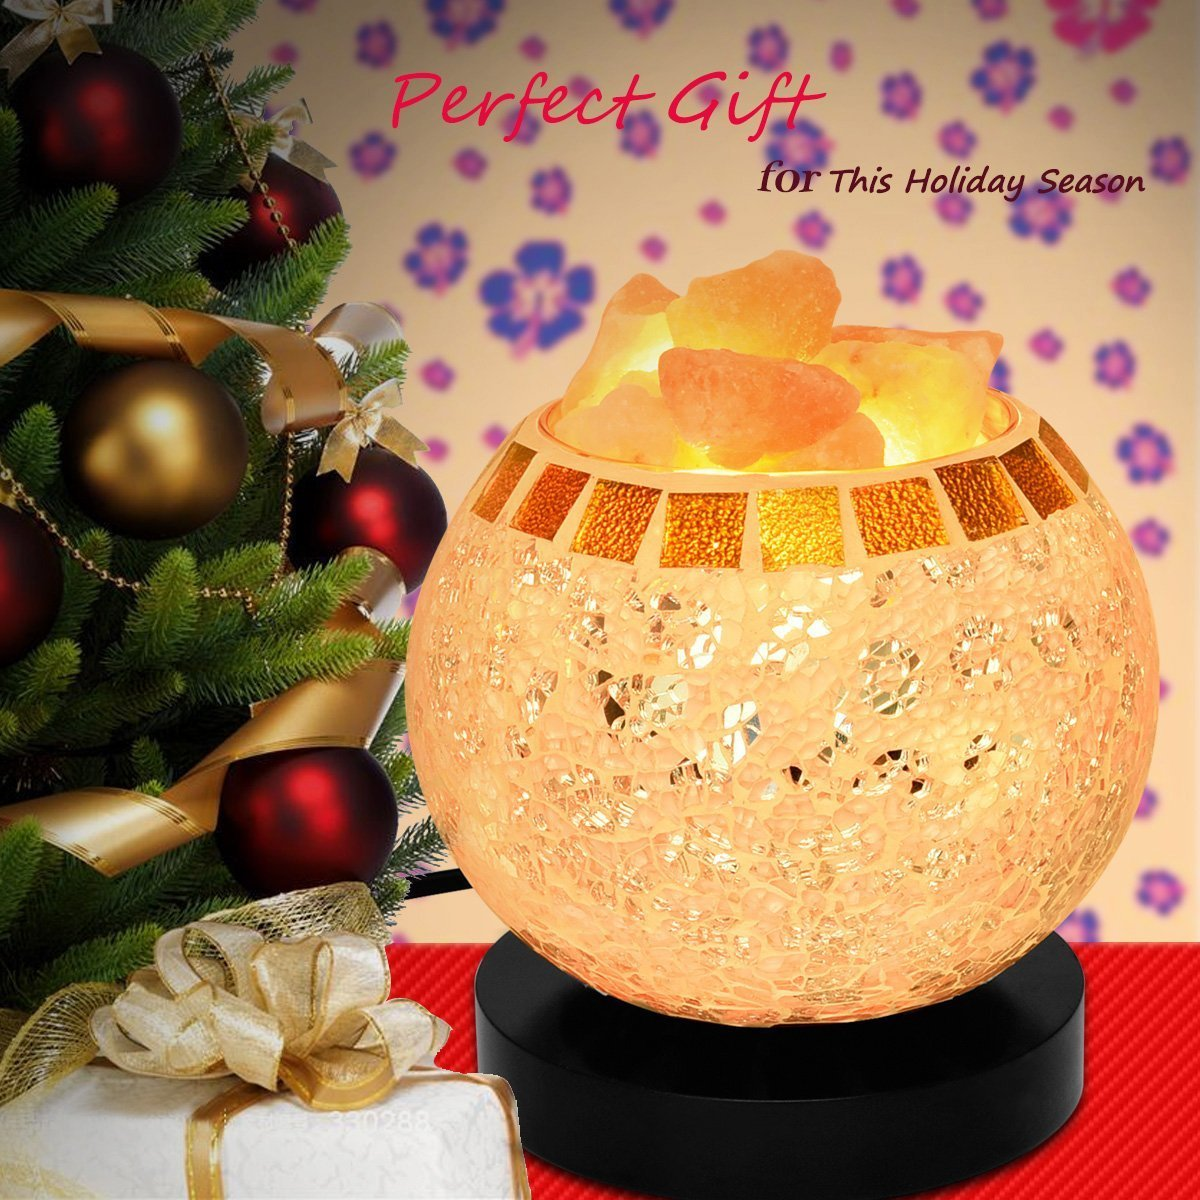 Himalayan Salt Lamp, Natural Crystal Salt Lamp Salt Chunks in Glass Bowl with Wood Base, Bulb and Dimmer Control for Christmas Gift and Home Decorations. [energy class a+++] by COOWOO (Image #3)